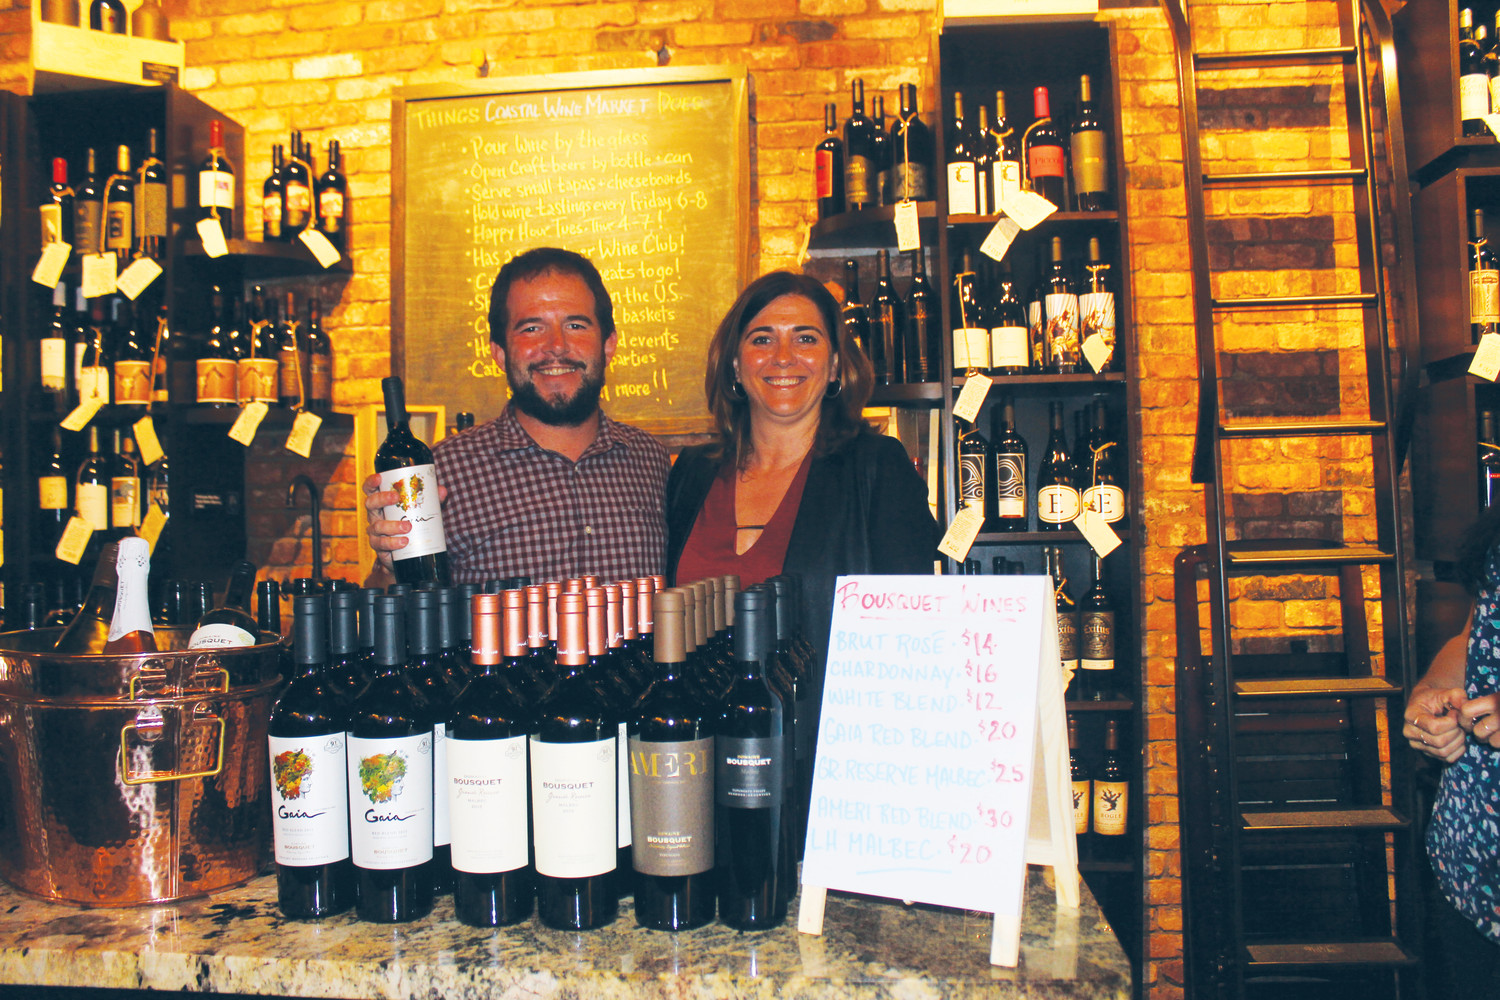 Coastal Wine Market & Tasting Room Co-owner Steve Lourie and Domaine Bousquet CEO, Co-founder and Partner Anne Bousquet